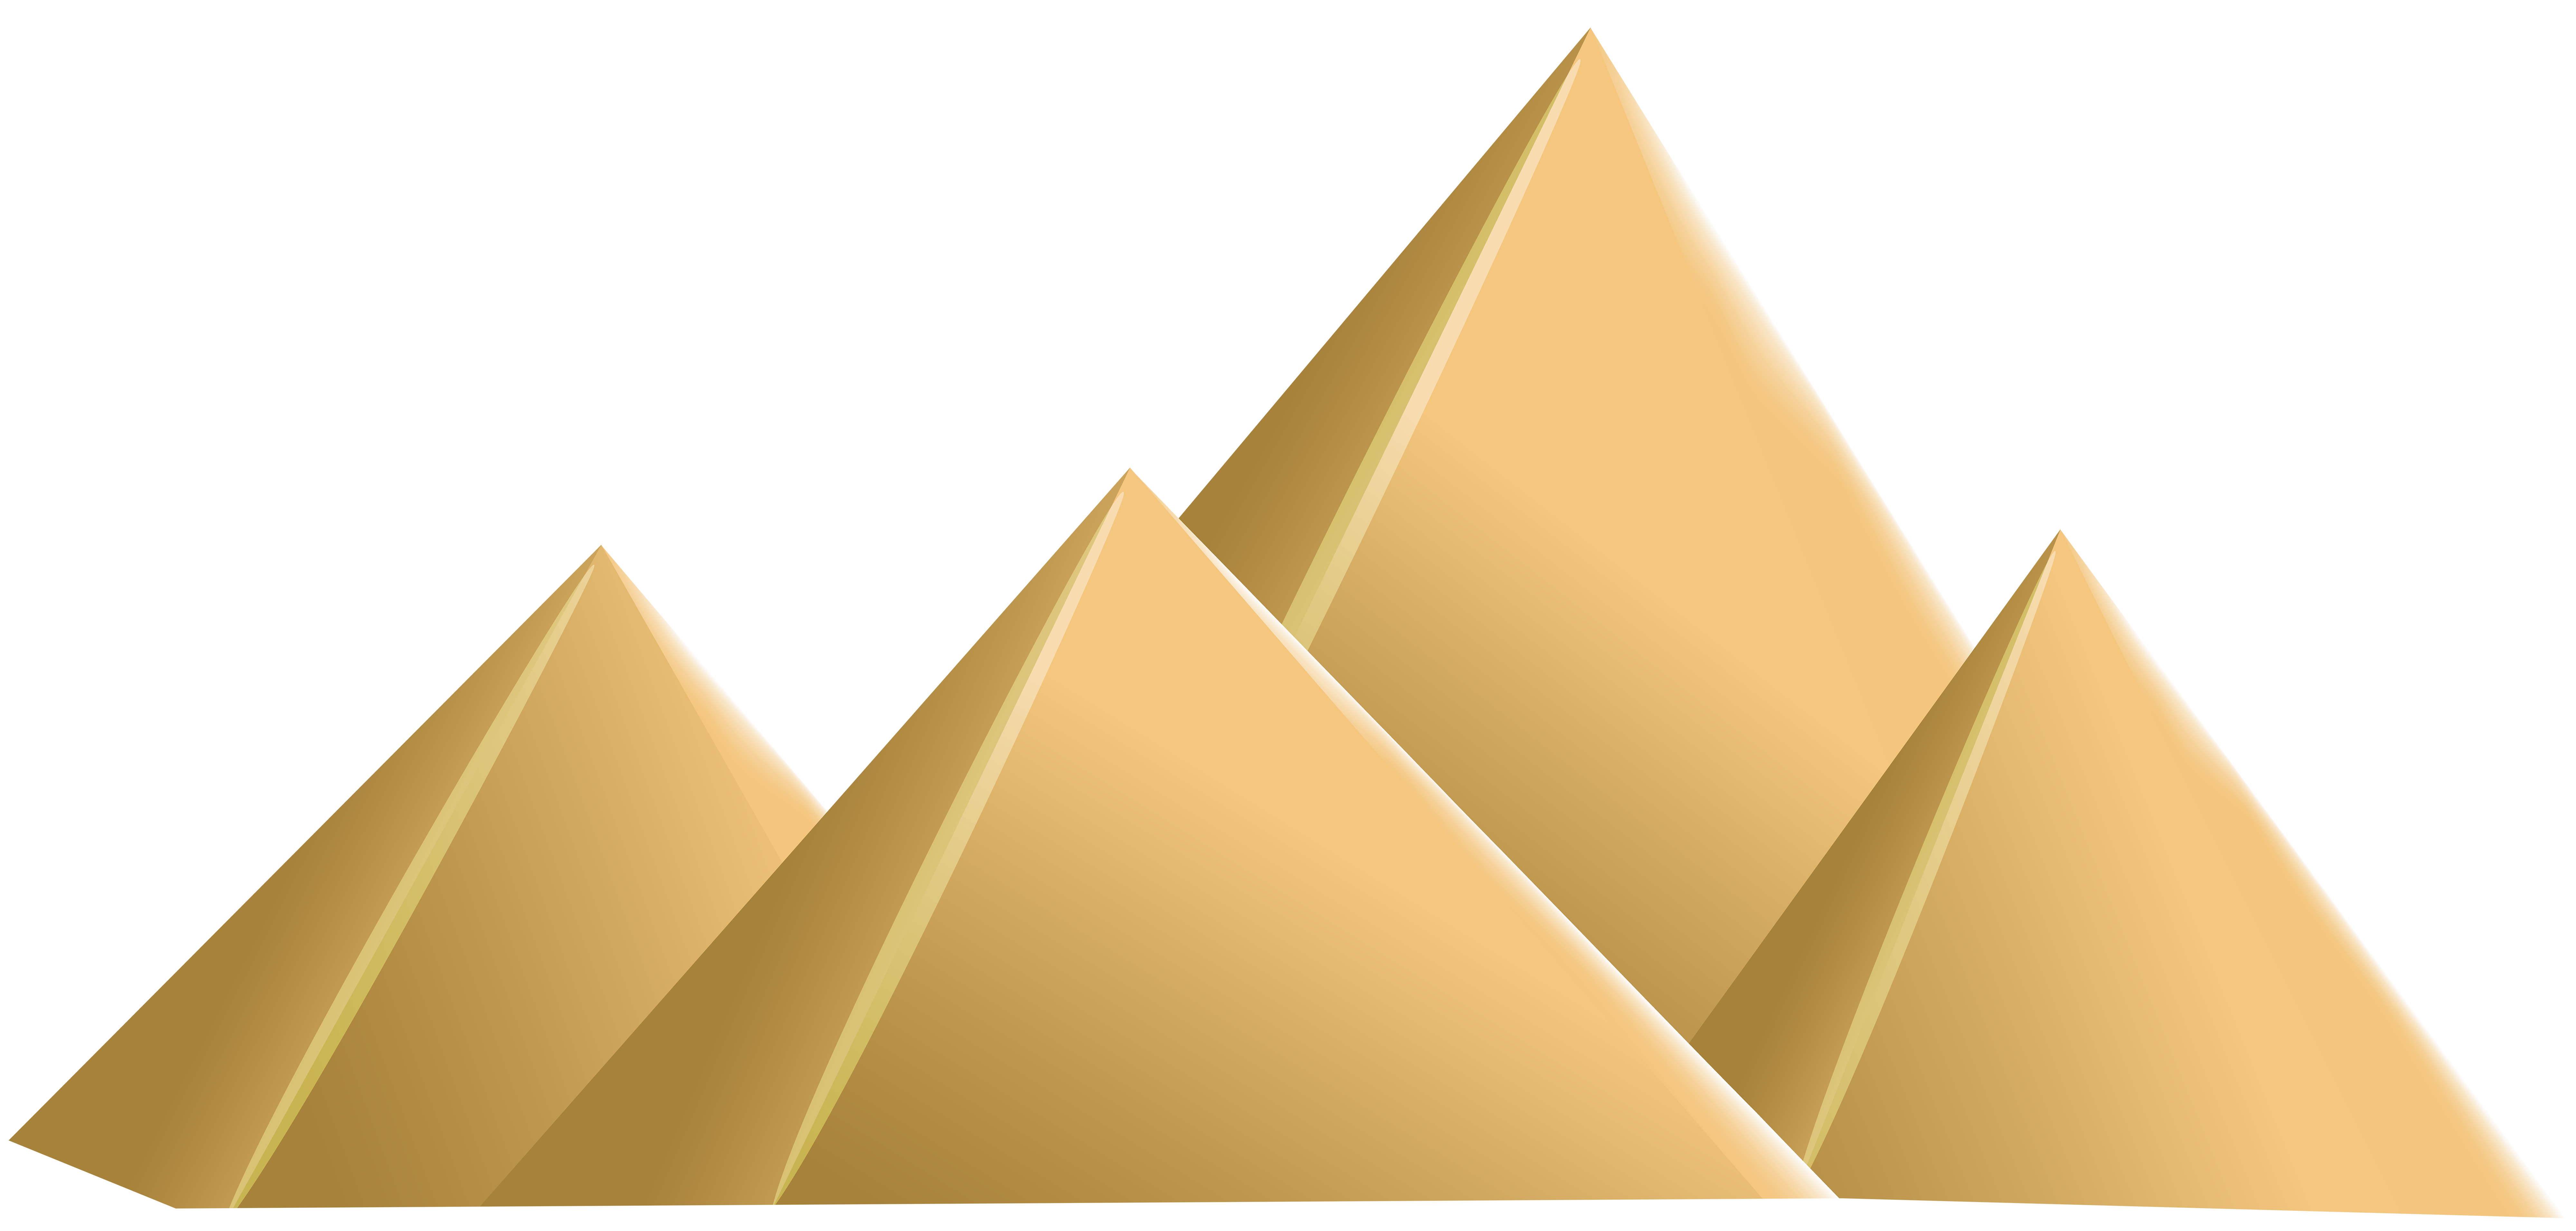 Egypt clipart pyramids. Egyptian great pyramid of